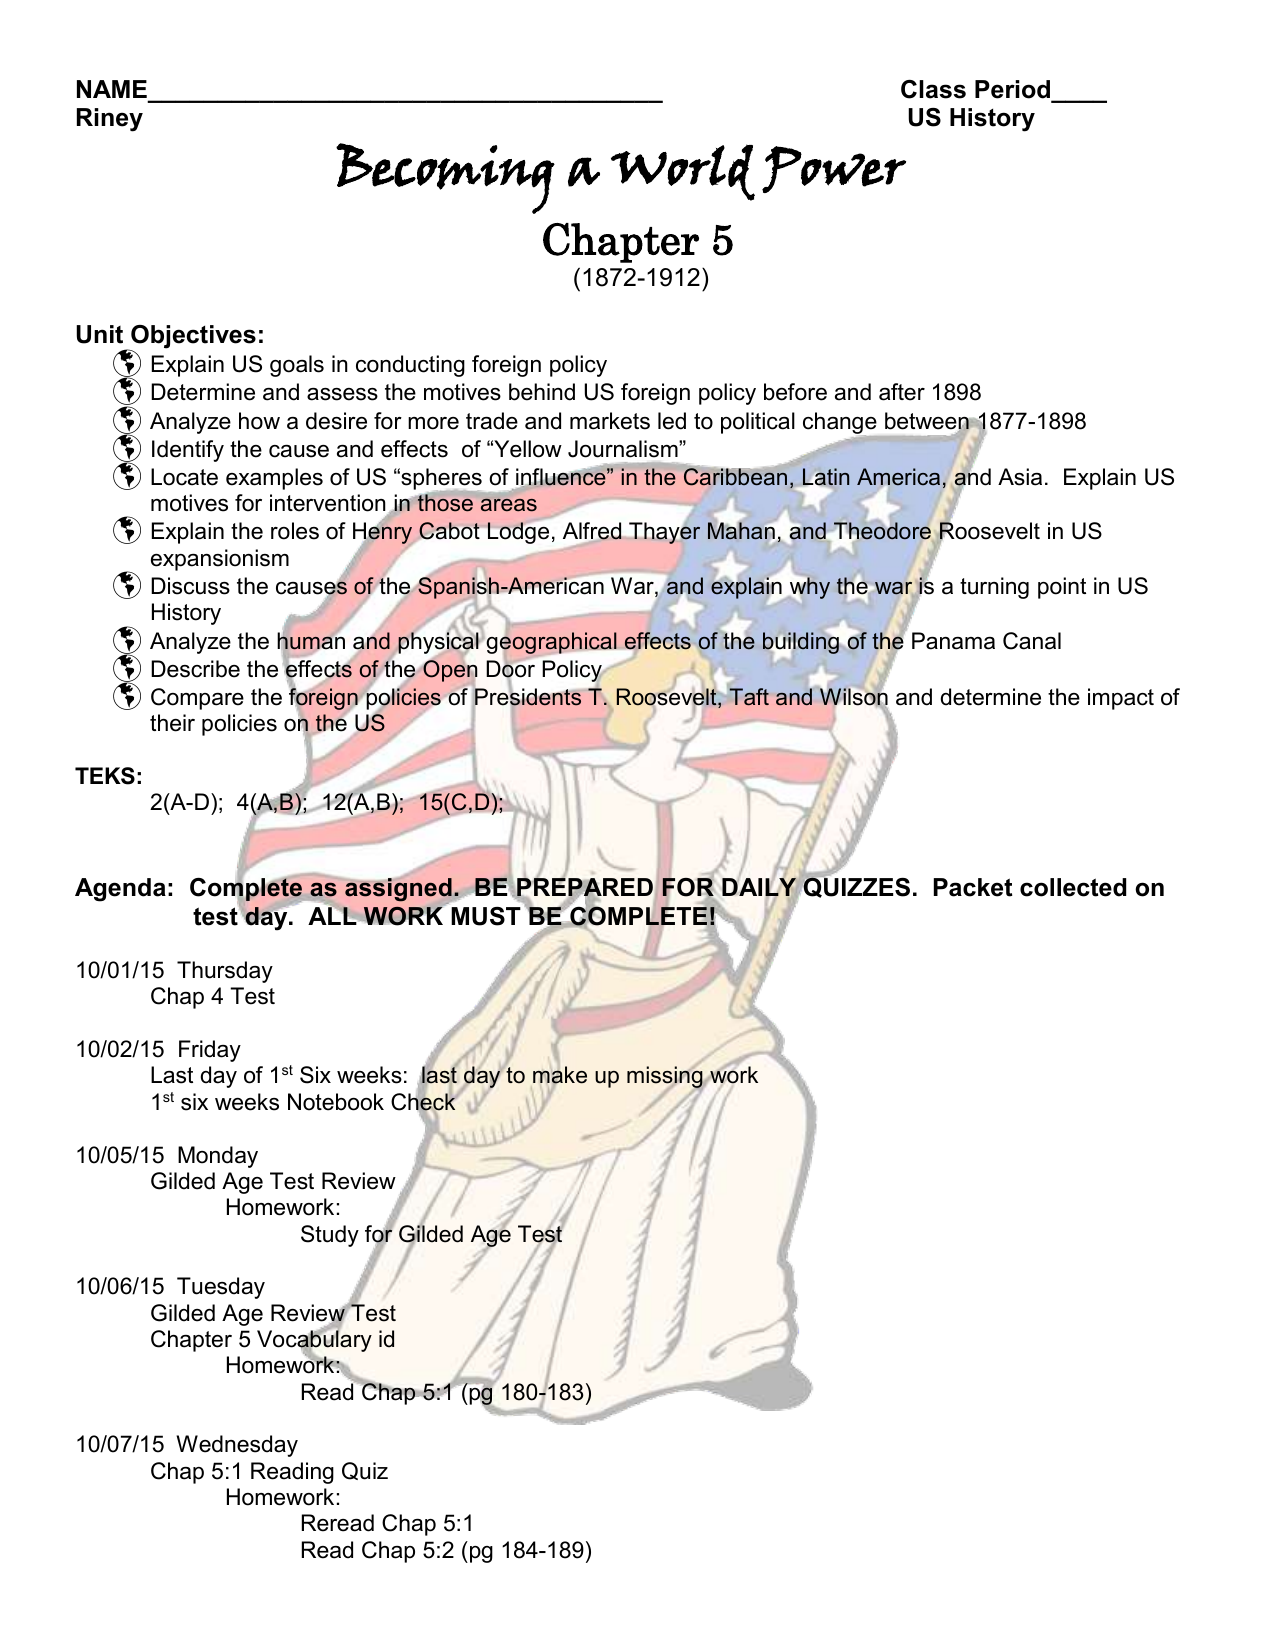 Chap 5 Becoming a World Power Assignment Packet